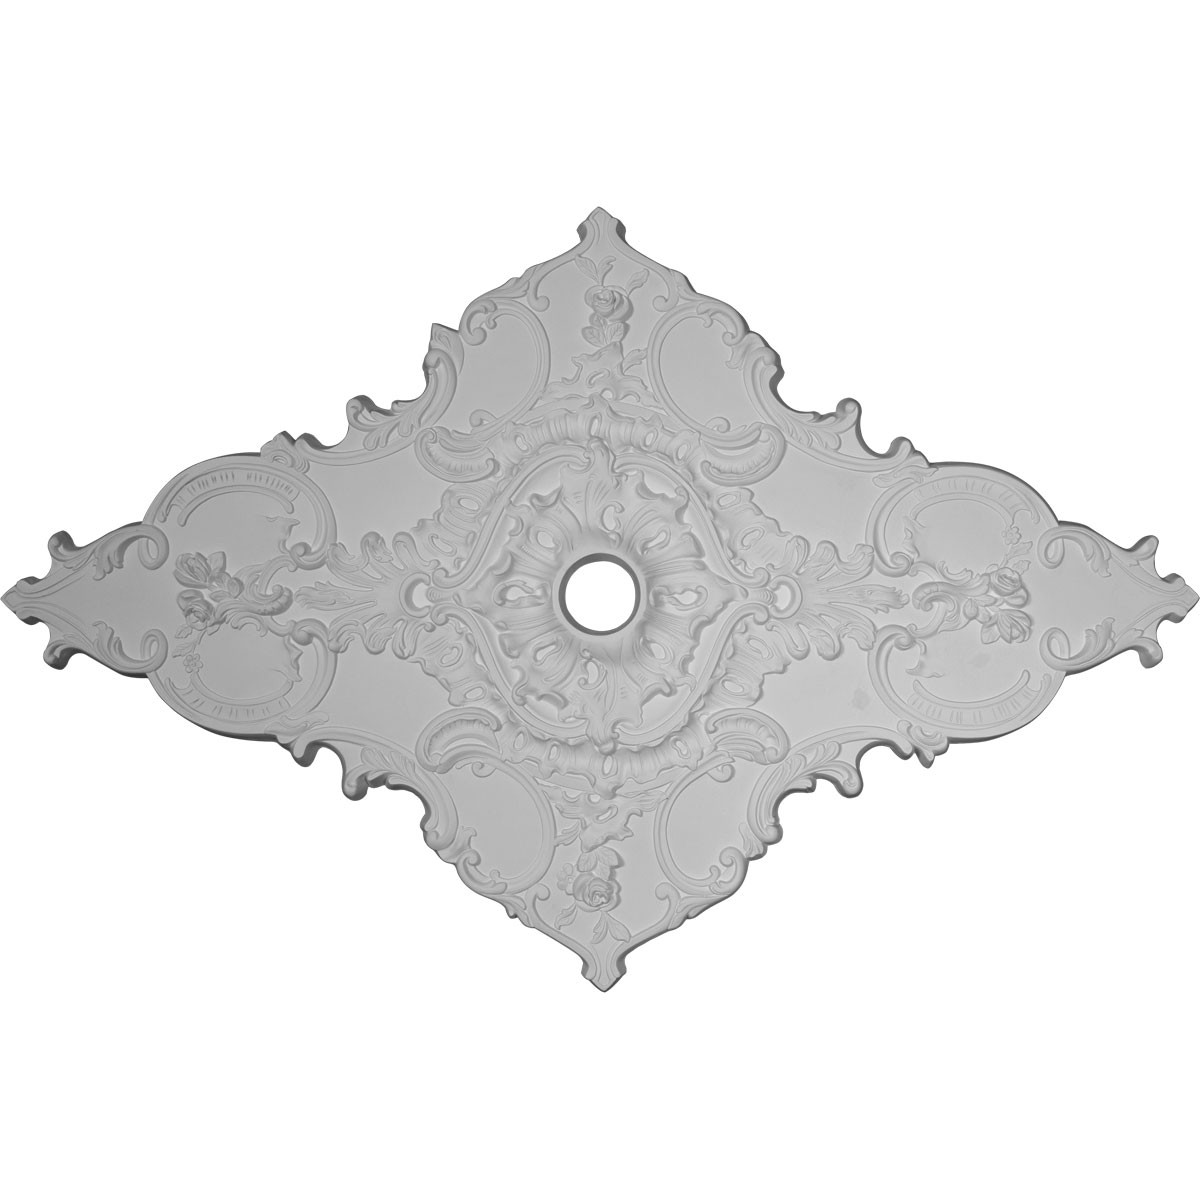 """EM-CM70X43ML - 67 1/4""""W x 43 3/8""""H x 4""""ID x 2""""P Melchor Diamond Ceiling Medallion (Fits Canopies up to 4"""")"""